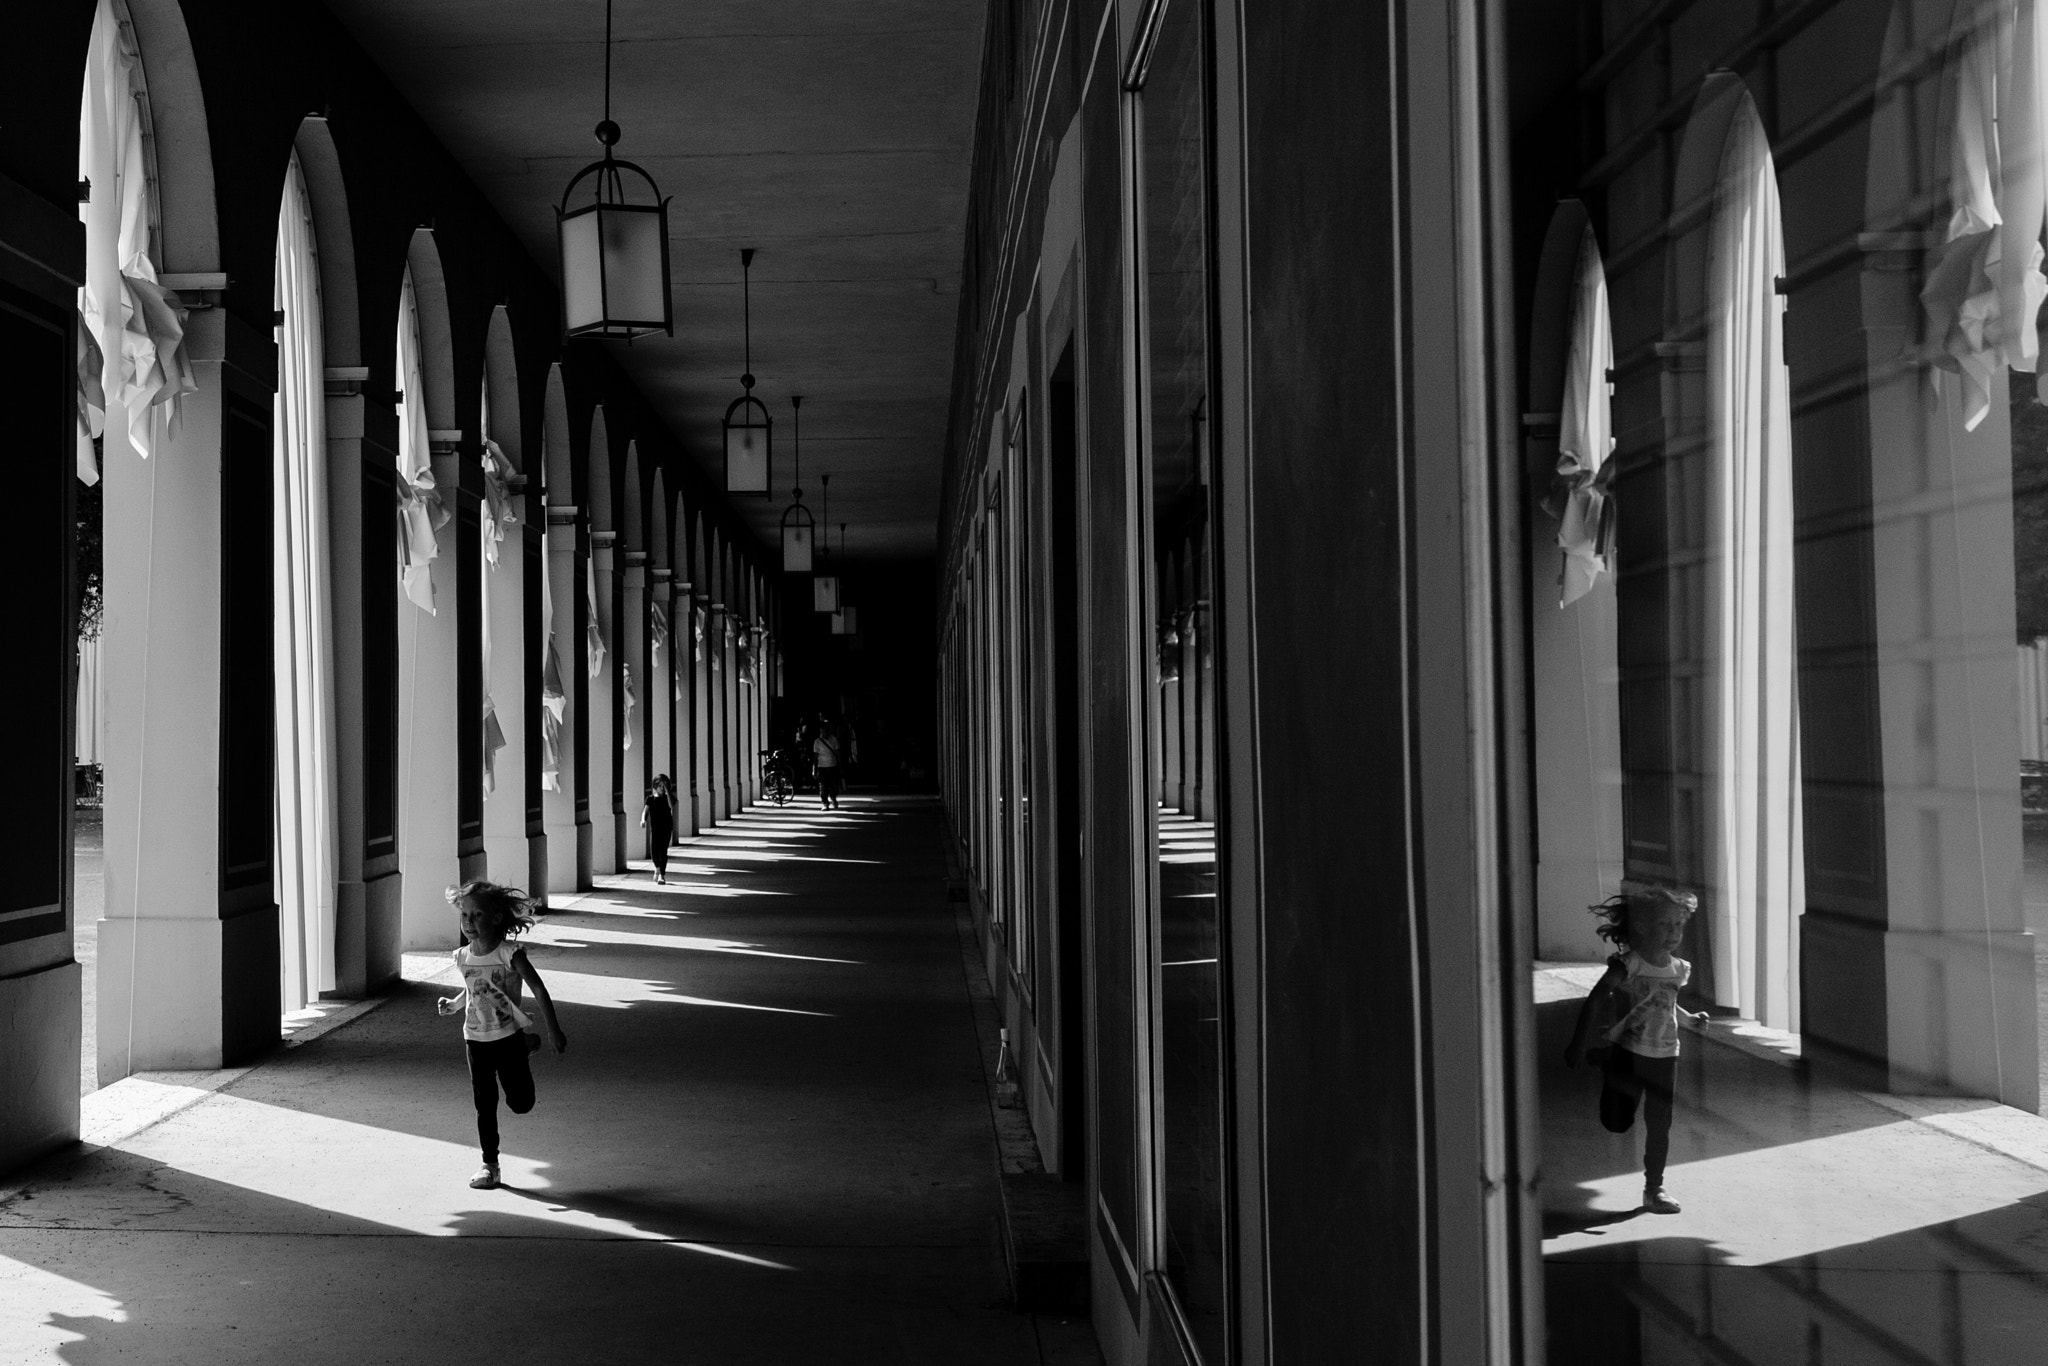 Photograph Light and Shadow by Heidrun Walther on 500px